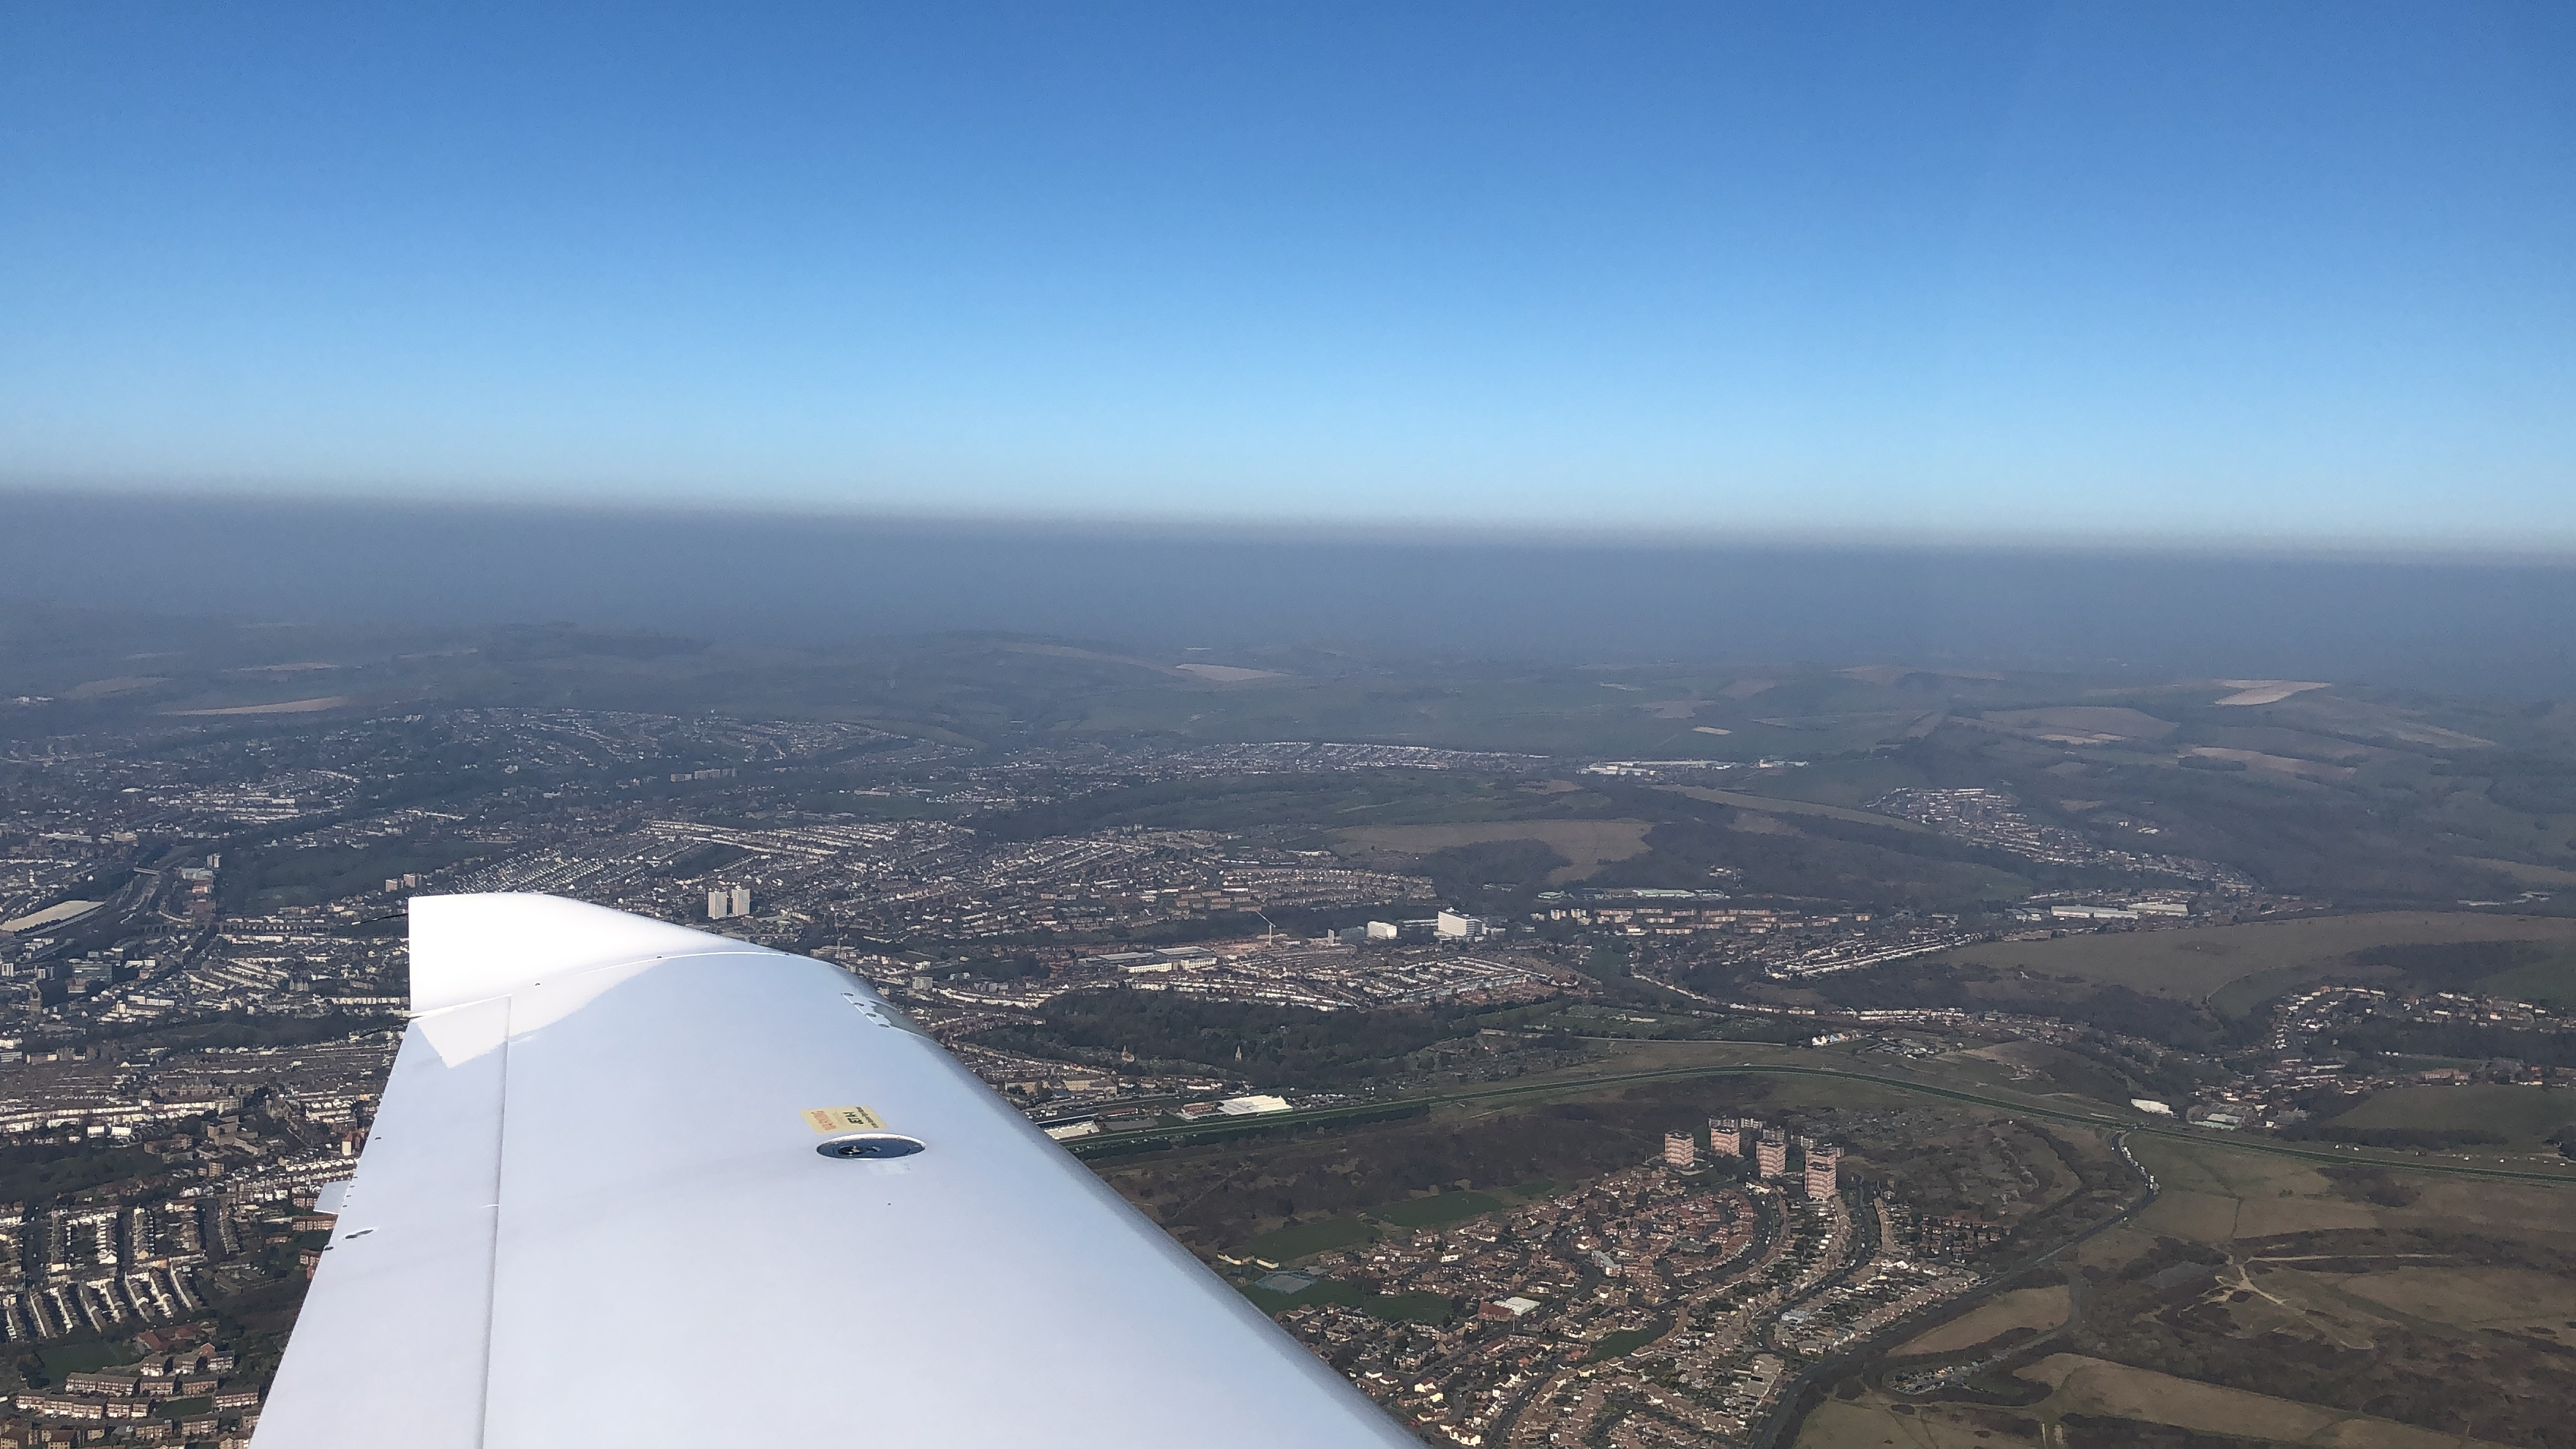 town-view-landscape-image-flying